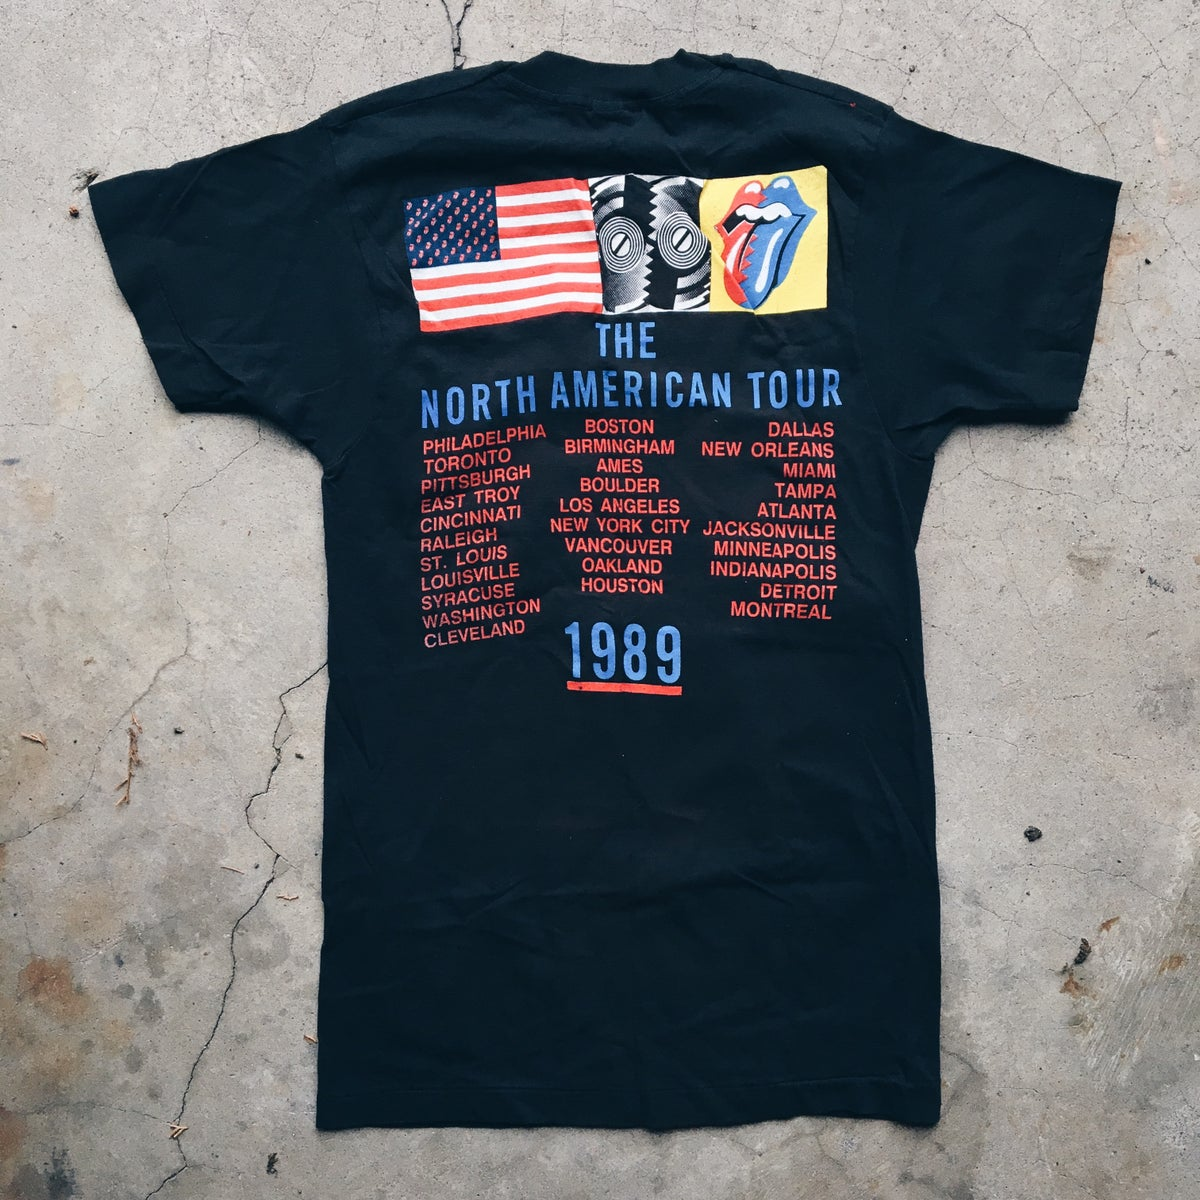 Image of Original 1989 Rolling Stones North American Tour Tee.